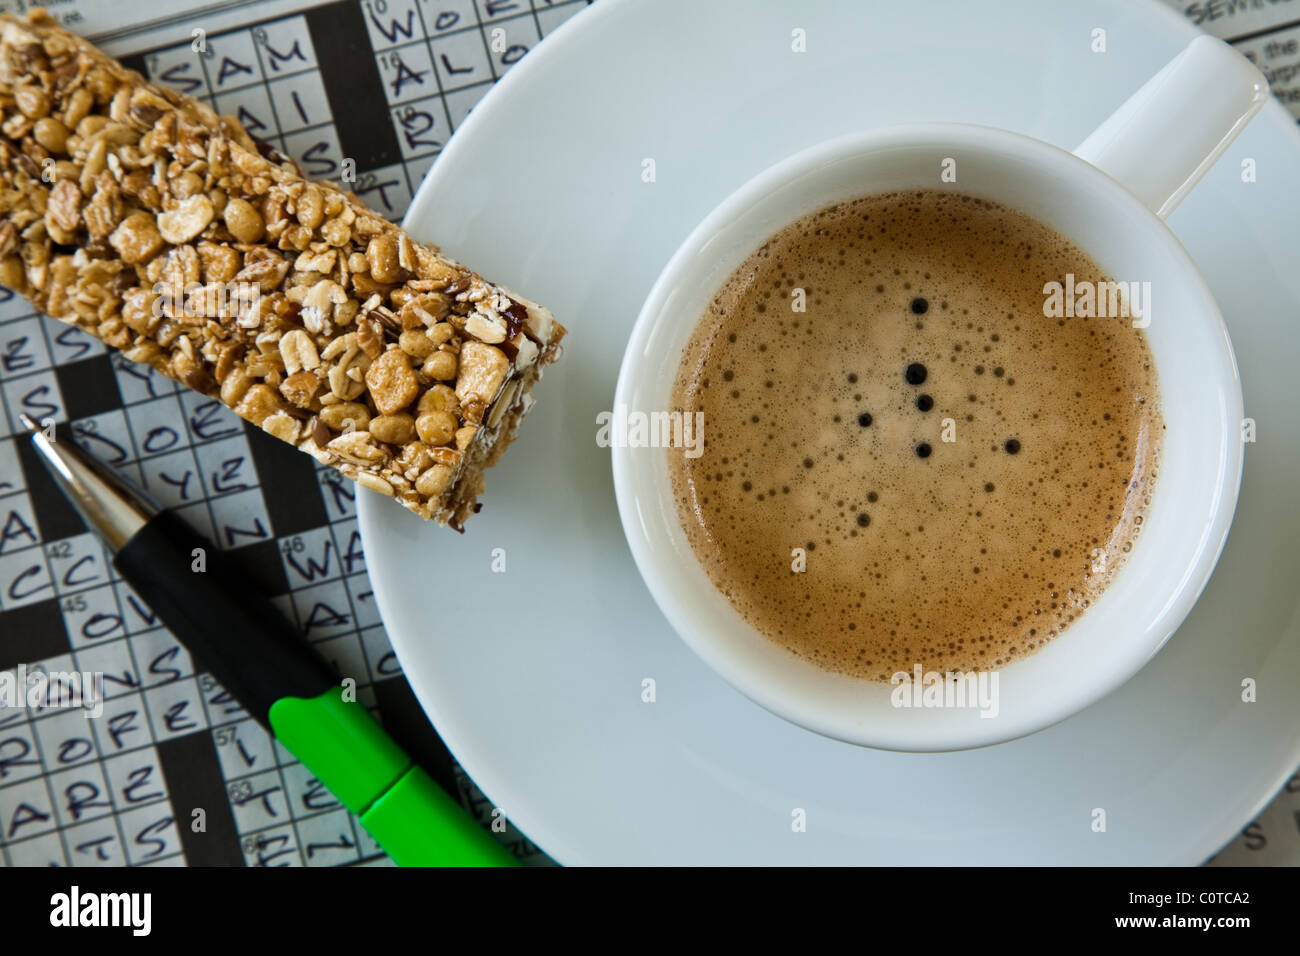 Crossword Puzzle And Coffee Stock Photos & Crossword Puzzle And ...